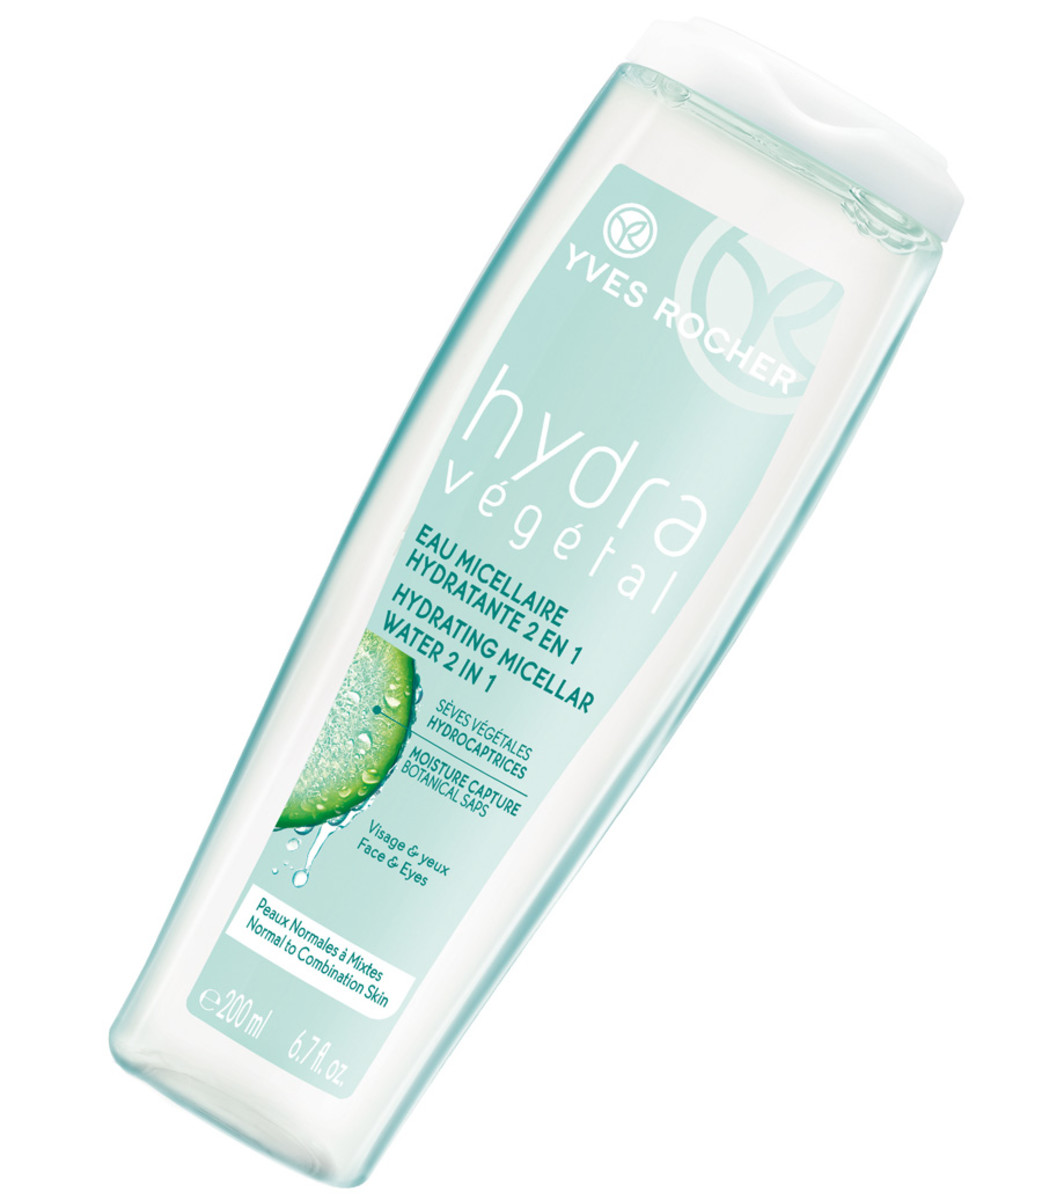 Micellar cleanser that doesn't sting eyes_Yves Rocher Hydra Vegetal Hydrating Micellar Water stings just a bit